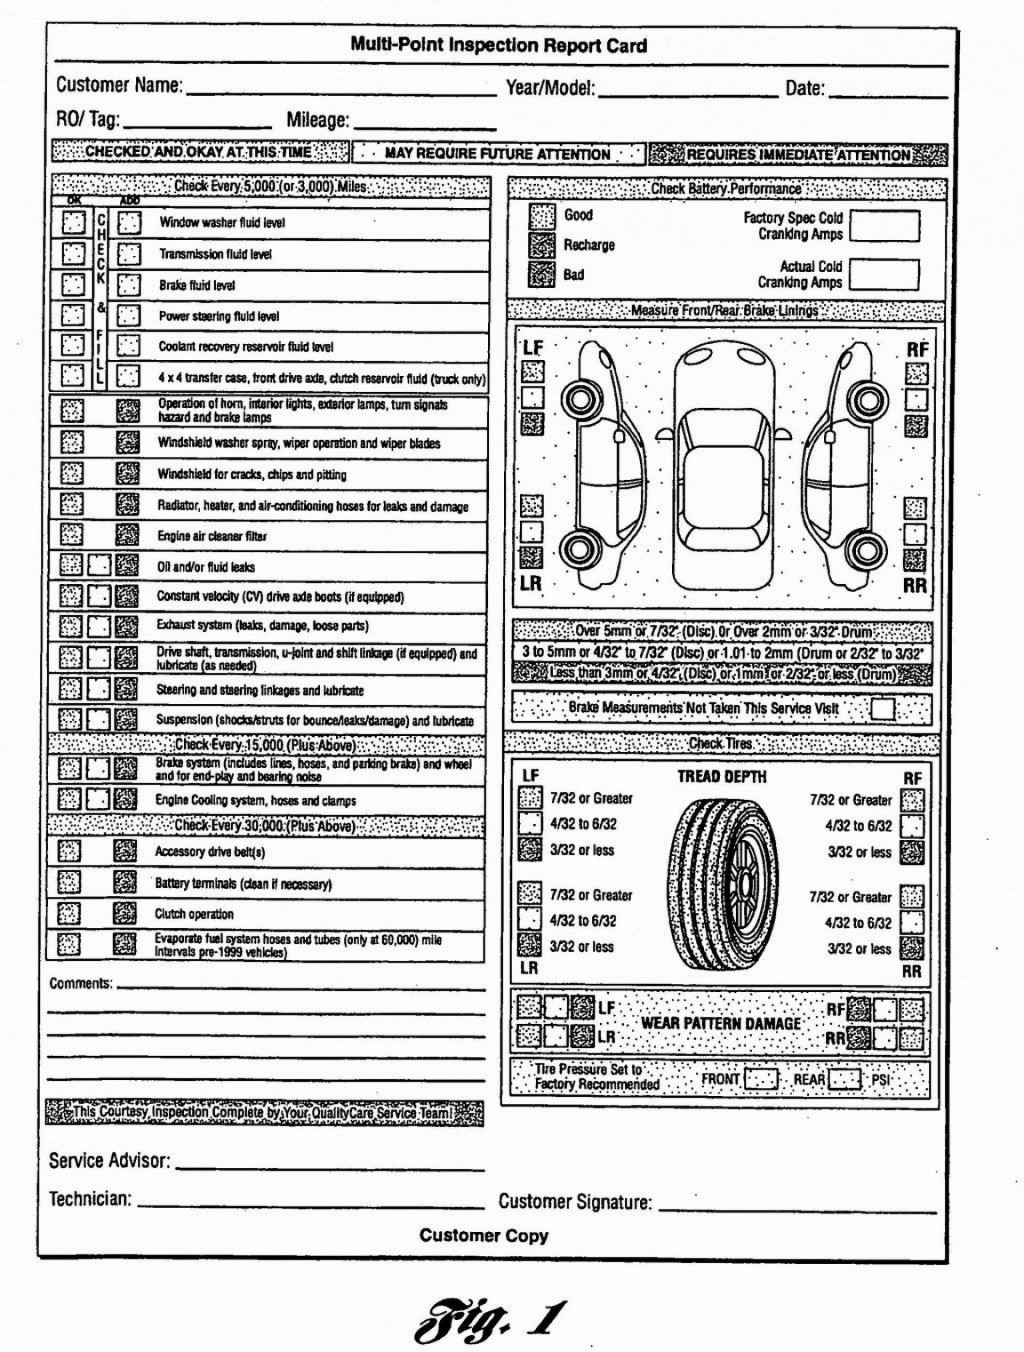 006 Magnificent Vehicle Inspection Form Template Example  Printable Pdf WordLarge